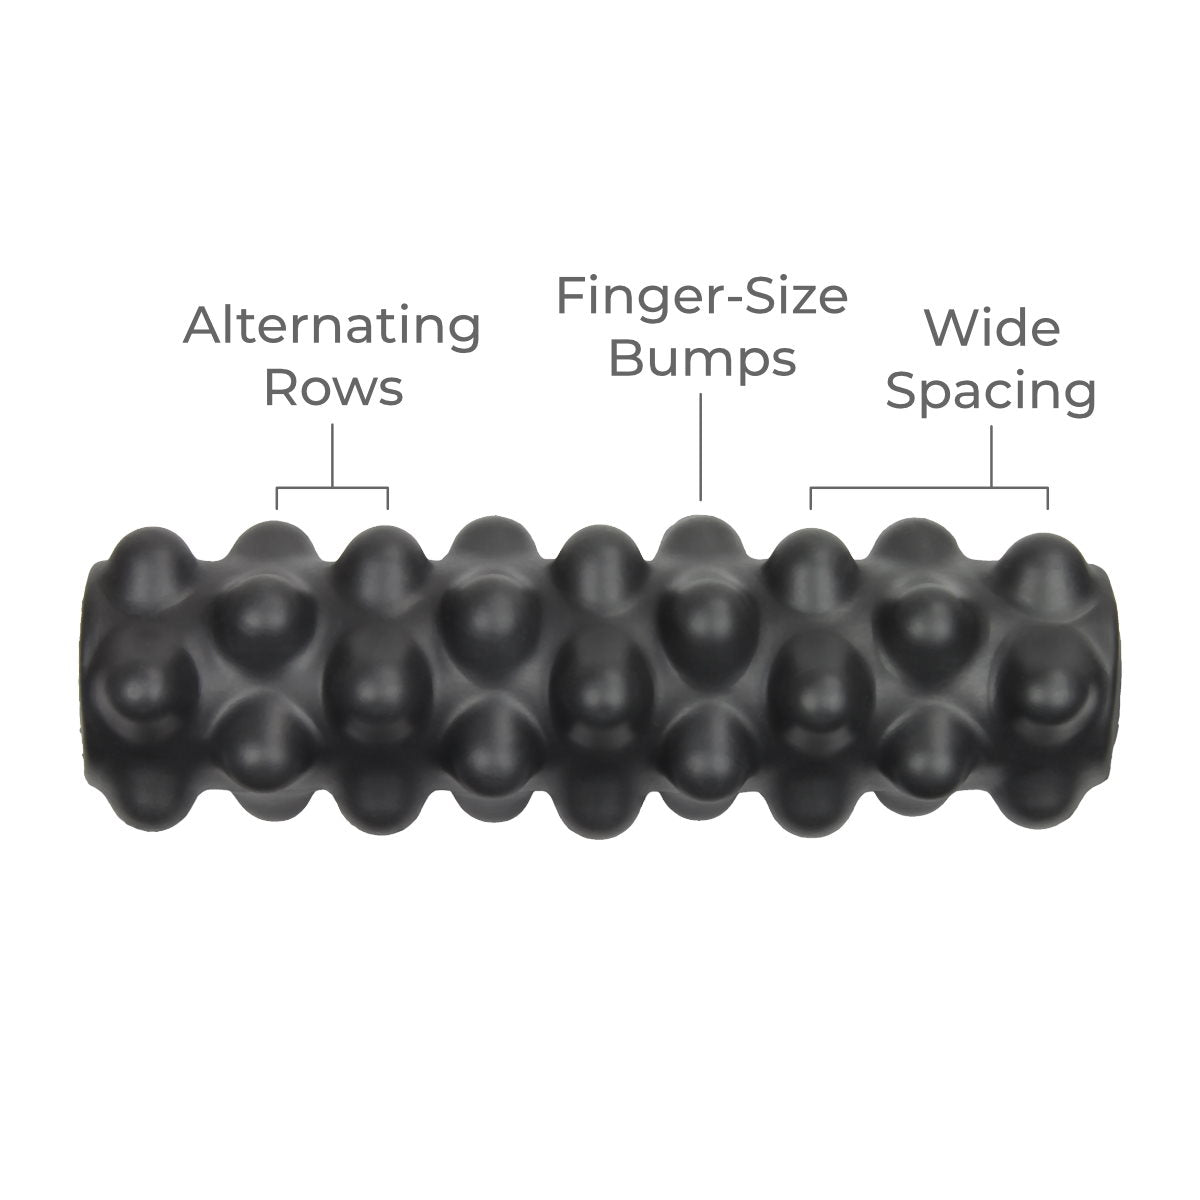 BreakUP bumpy firm-density foam roller for use with DoubleUP frame